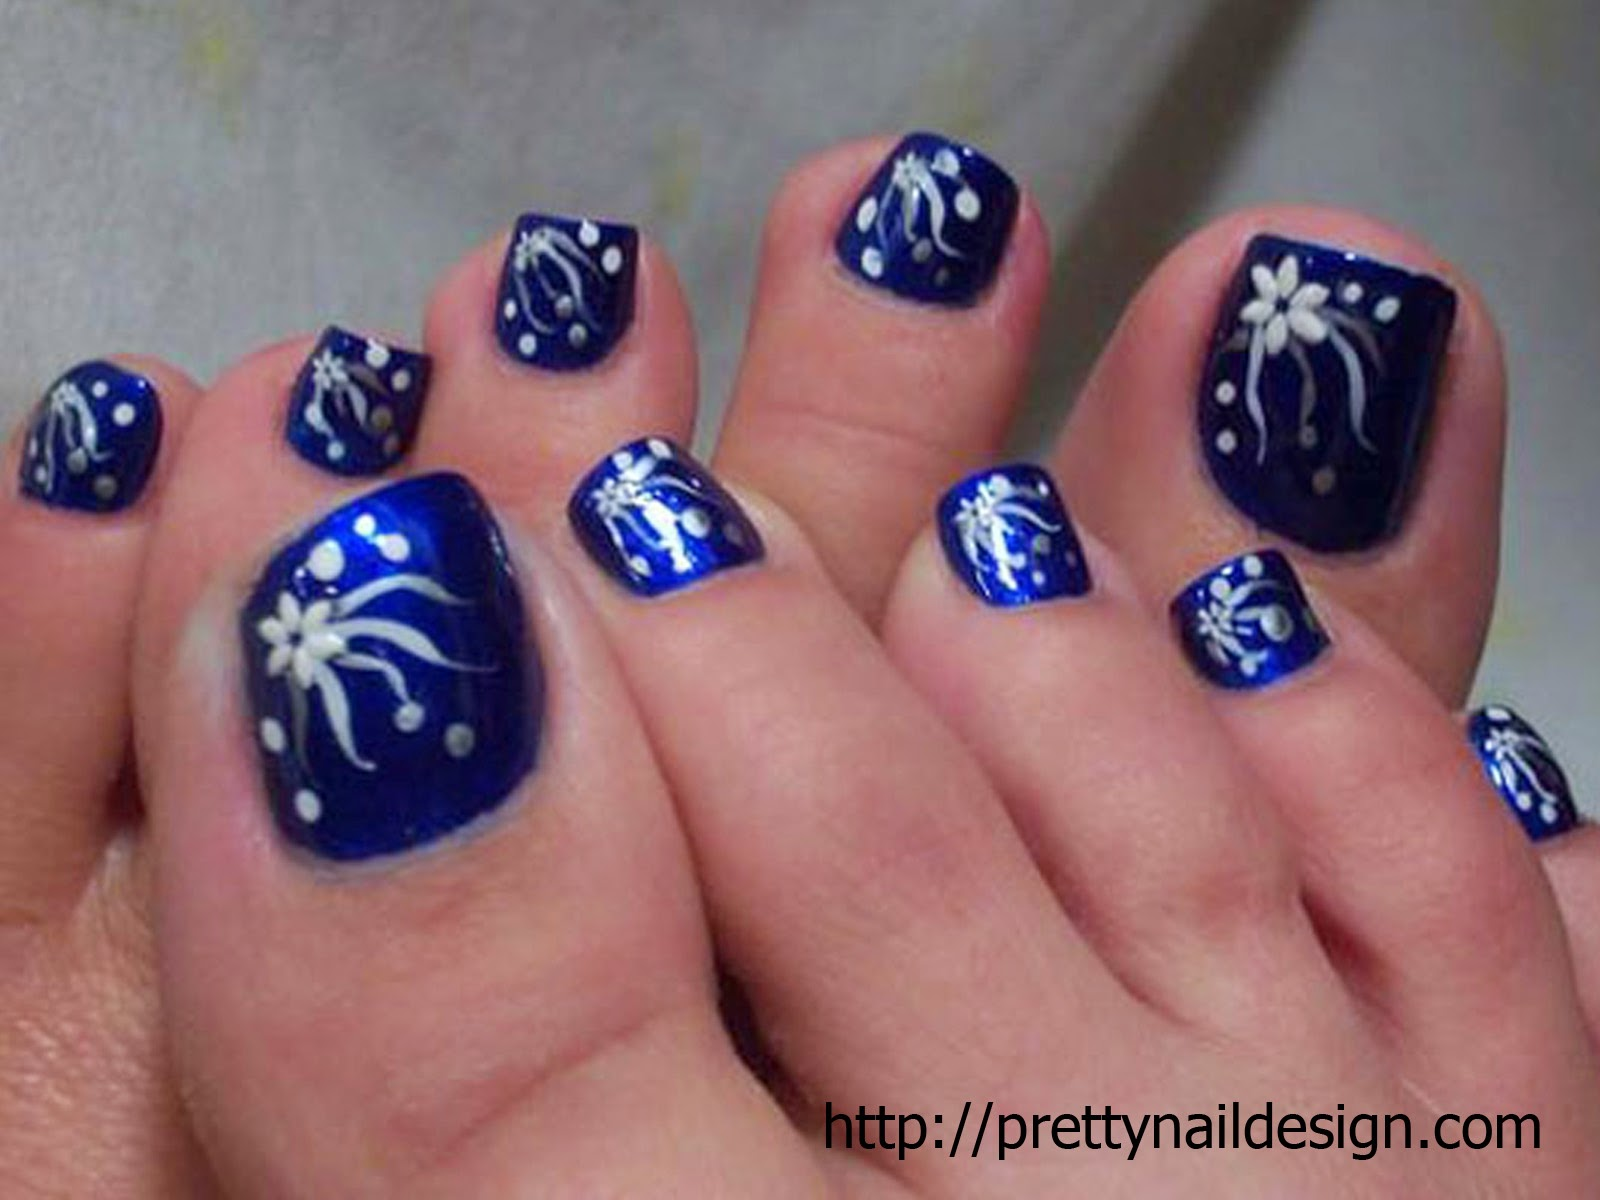 Nail Design: Nail Art Designs For Toes